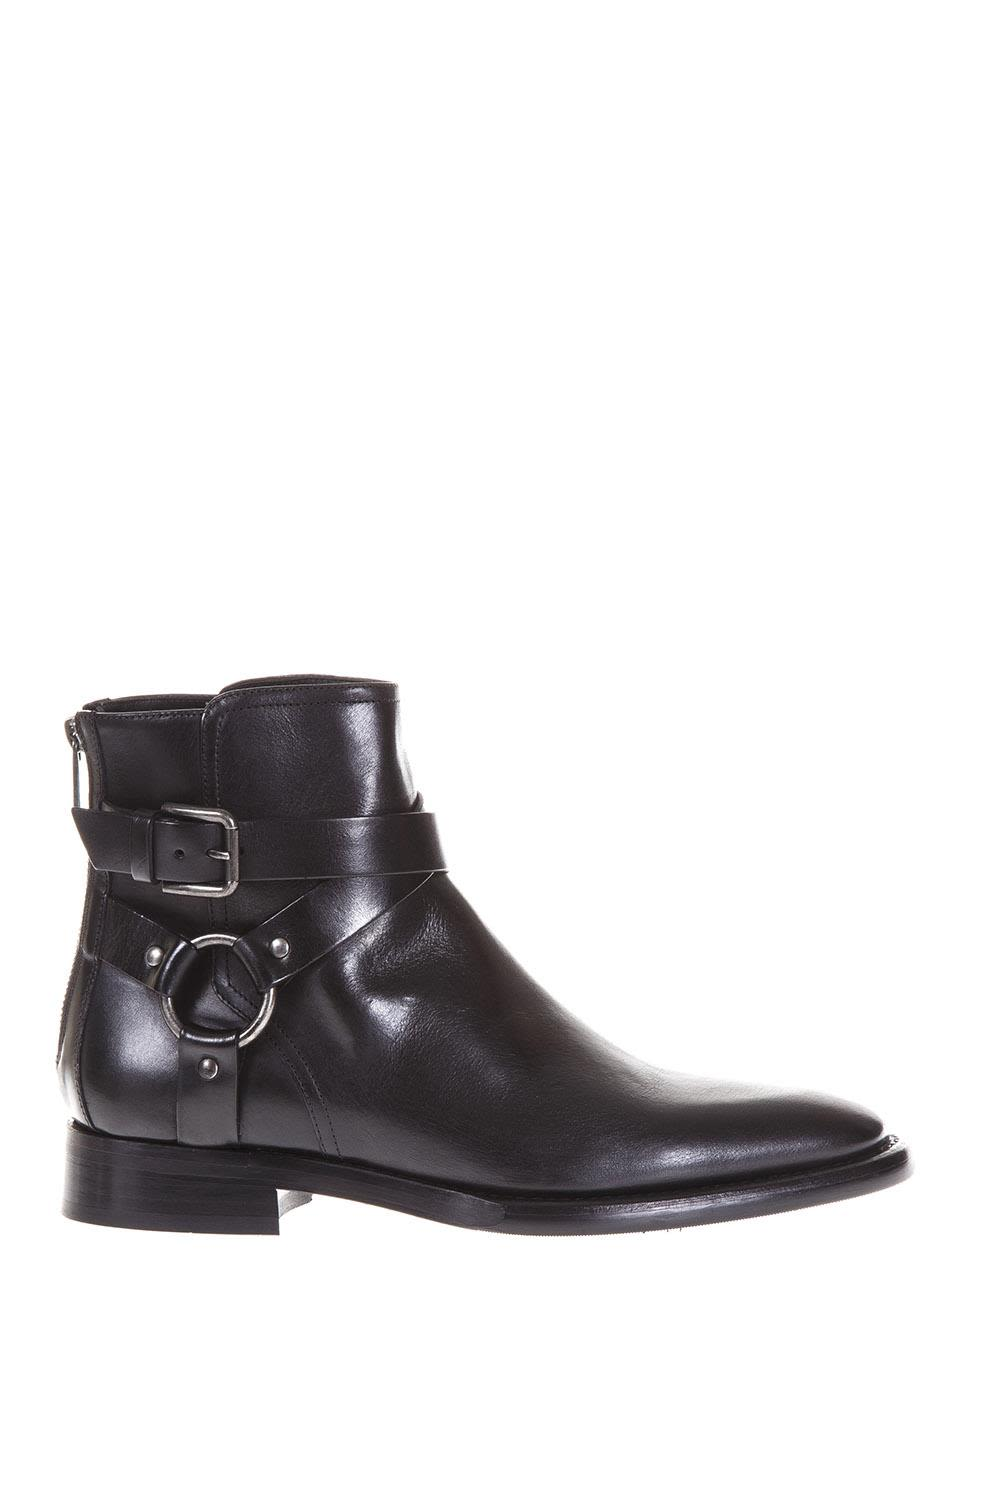 Dolce & Gabbana Leather Buckled Ankle Boots